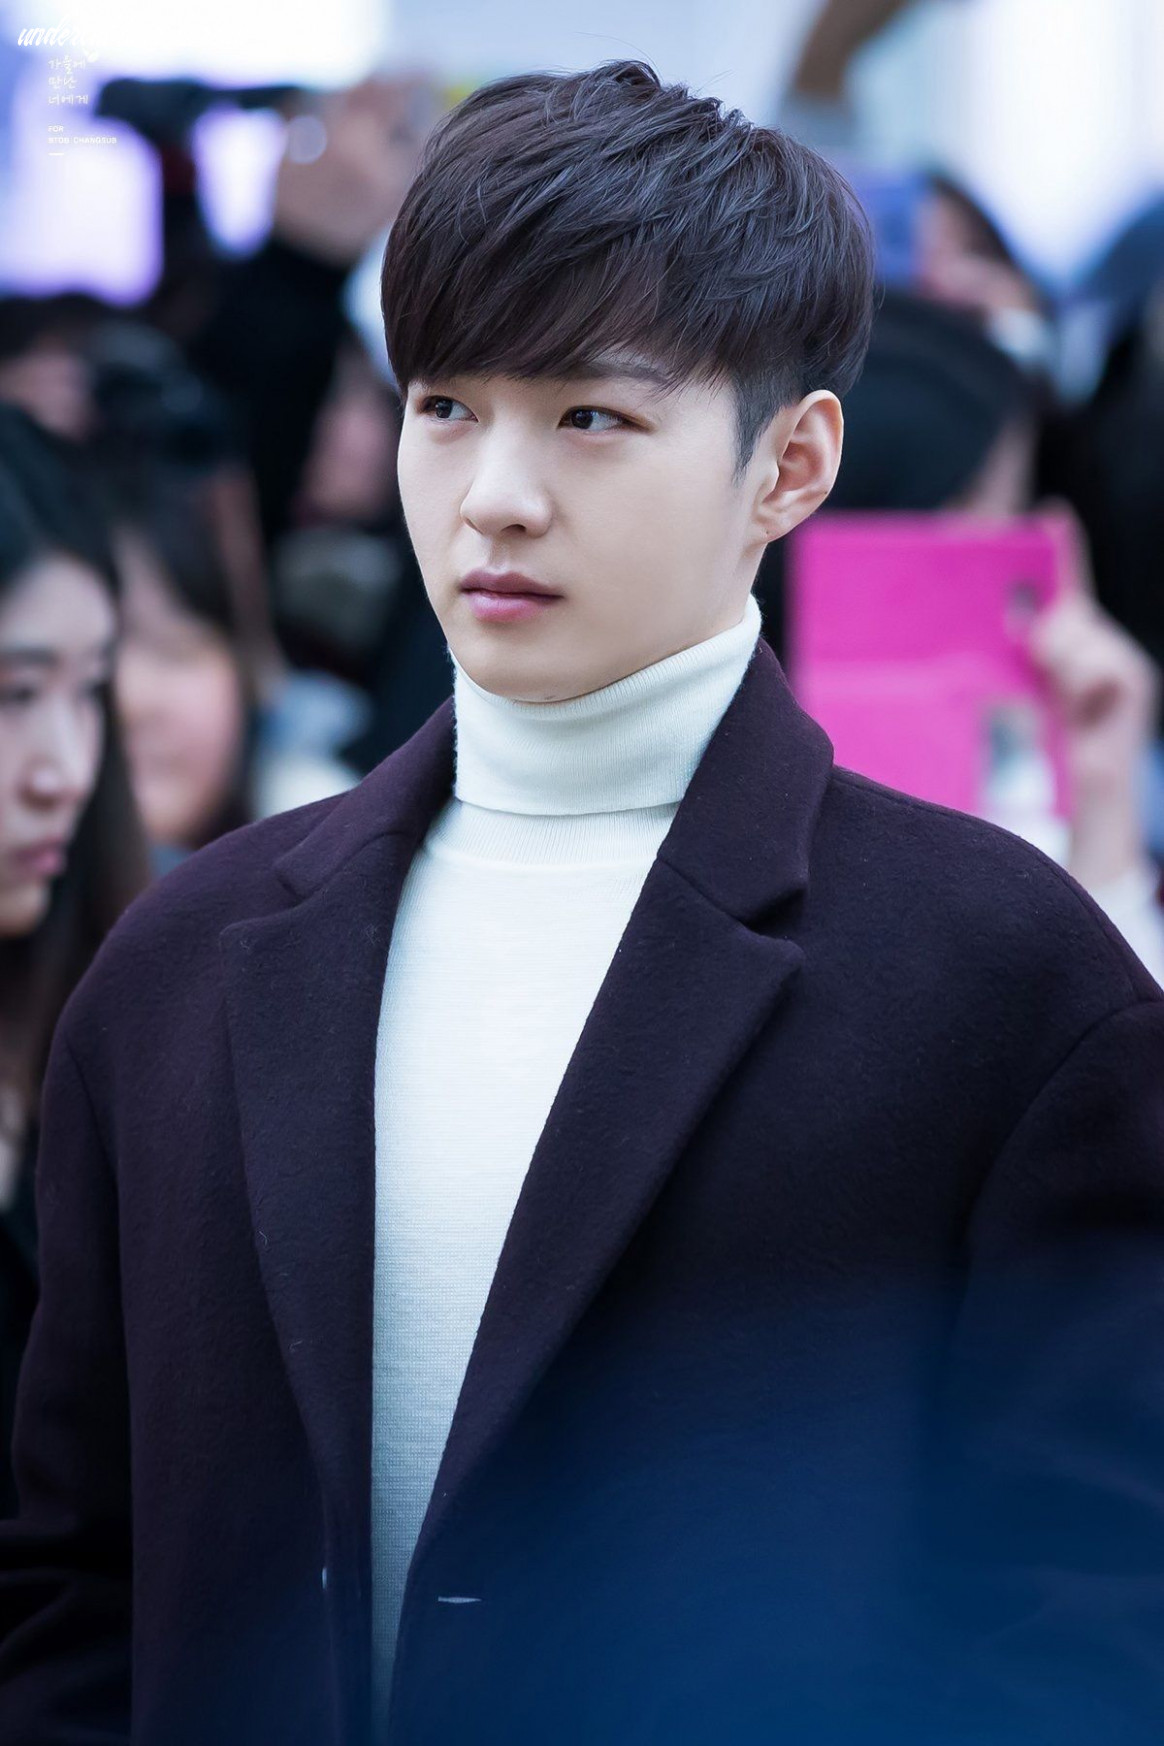 These kpop undercut hairstyle picture   korean hairstyle, mens